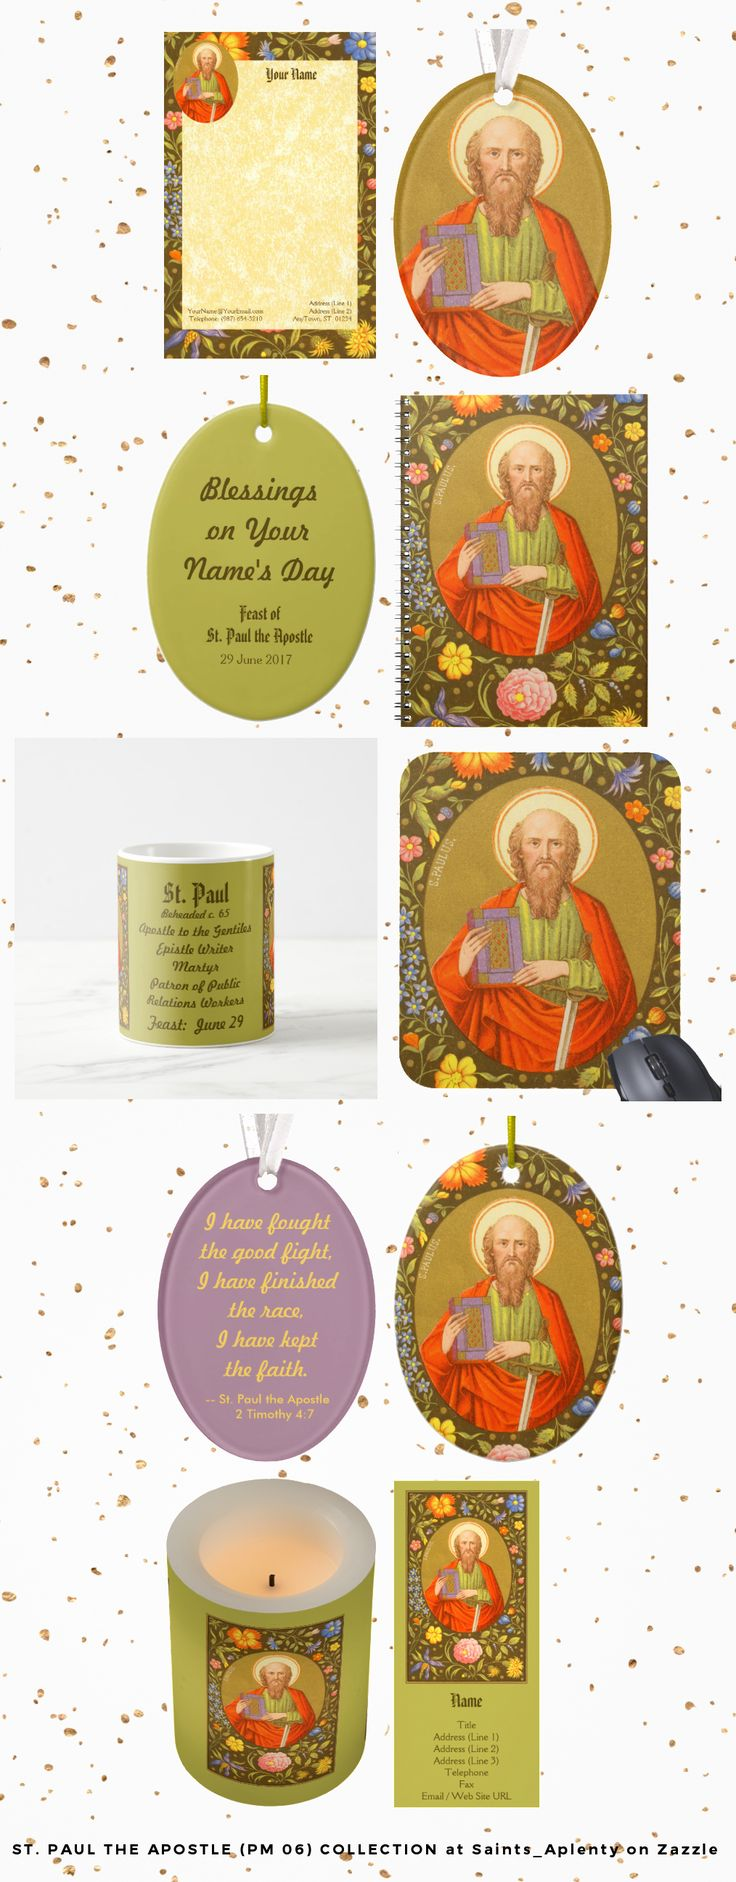 Just 8 of nearly 100 items at Saints_Aplenty on Zazzle featuring St. Paul the Apostle (Feast:  June 29th).   See our slideshow presentation for our complete product line.